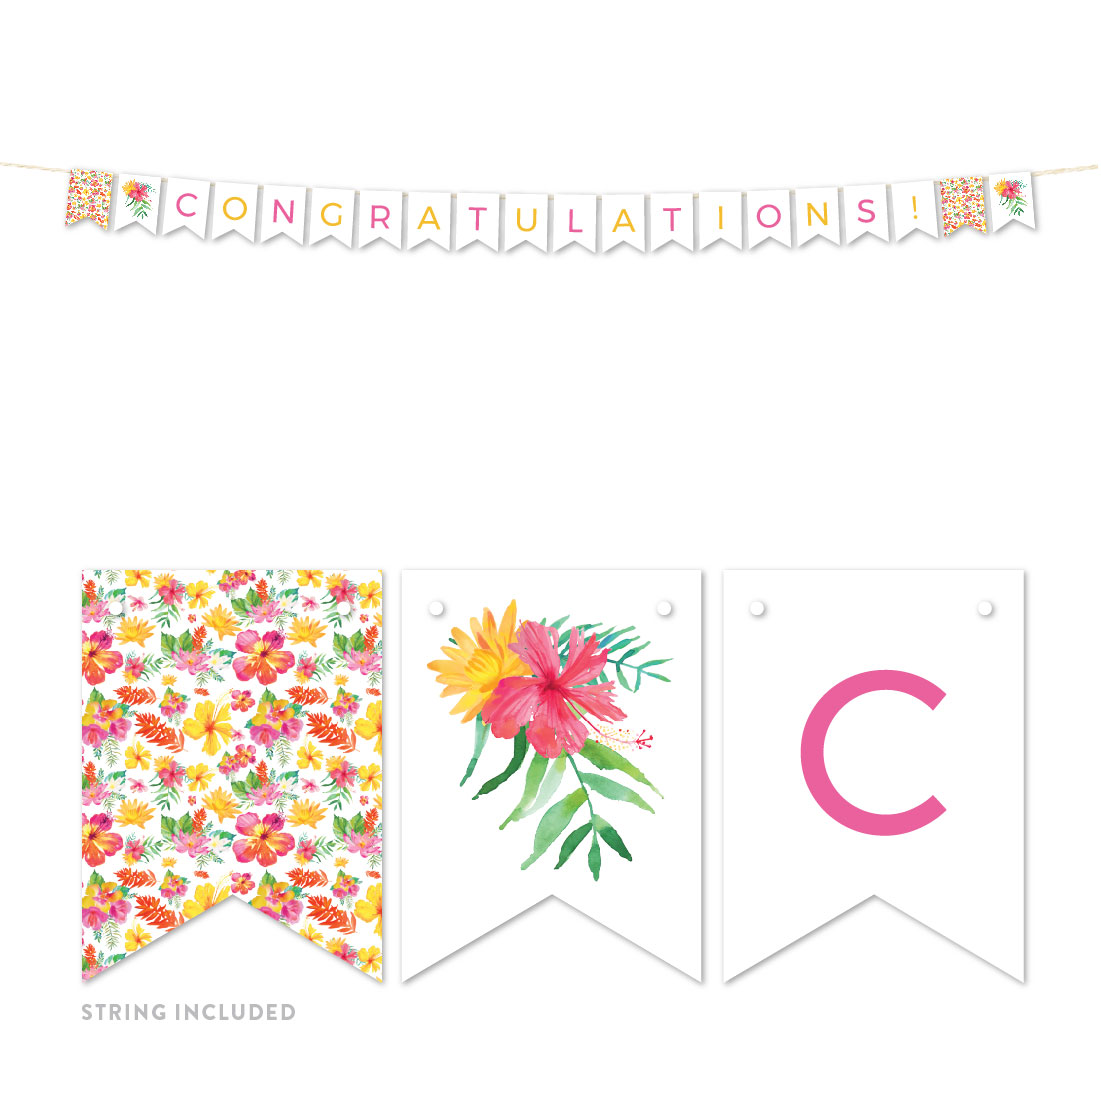 Tropical Floral Garden Party Wedding, Hanging Pennant Party Banner with String, Congratulations!